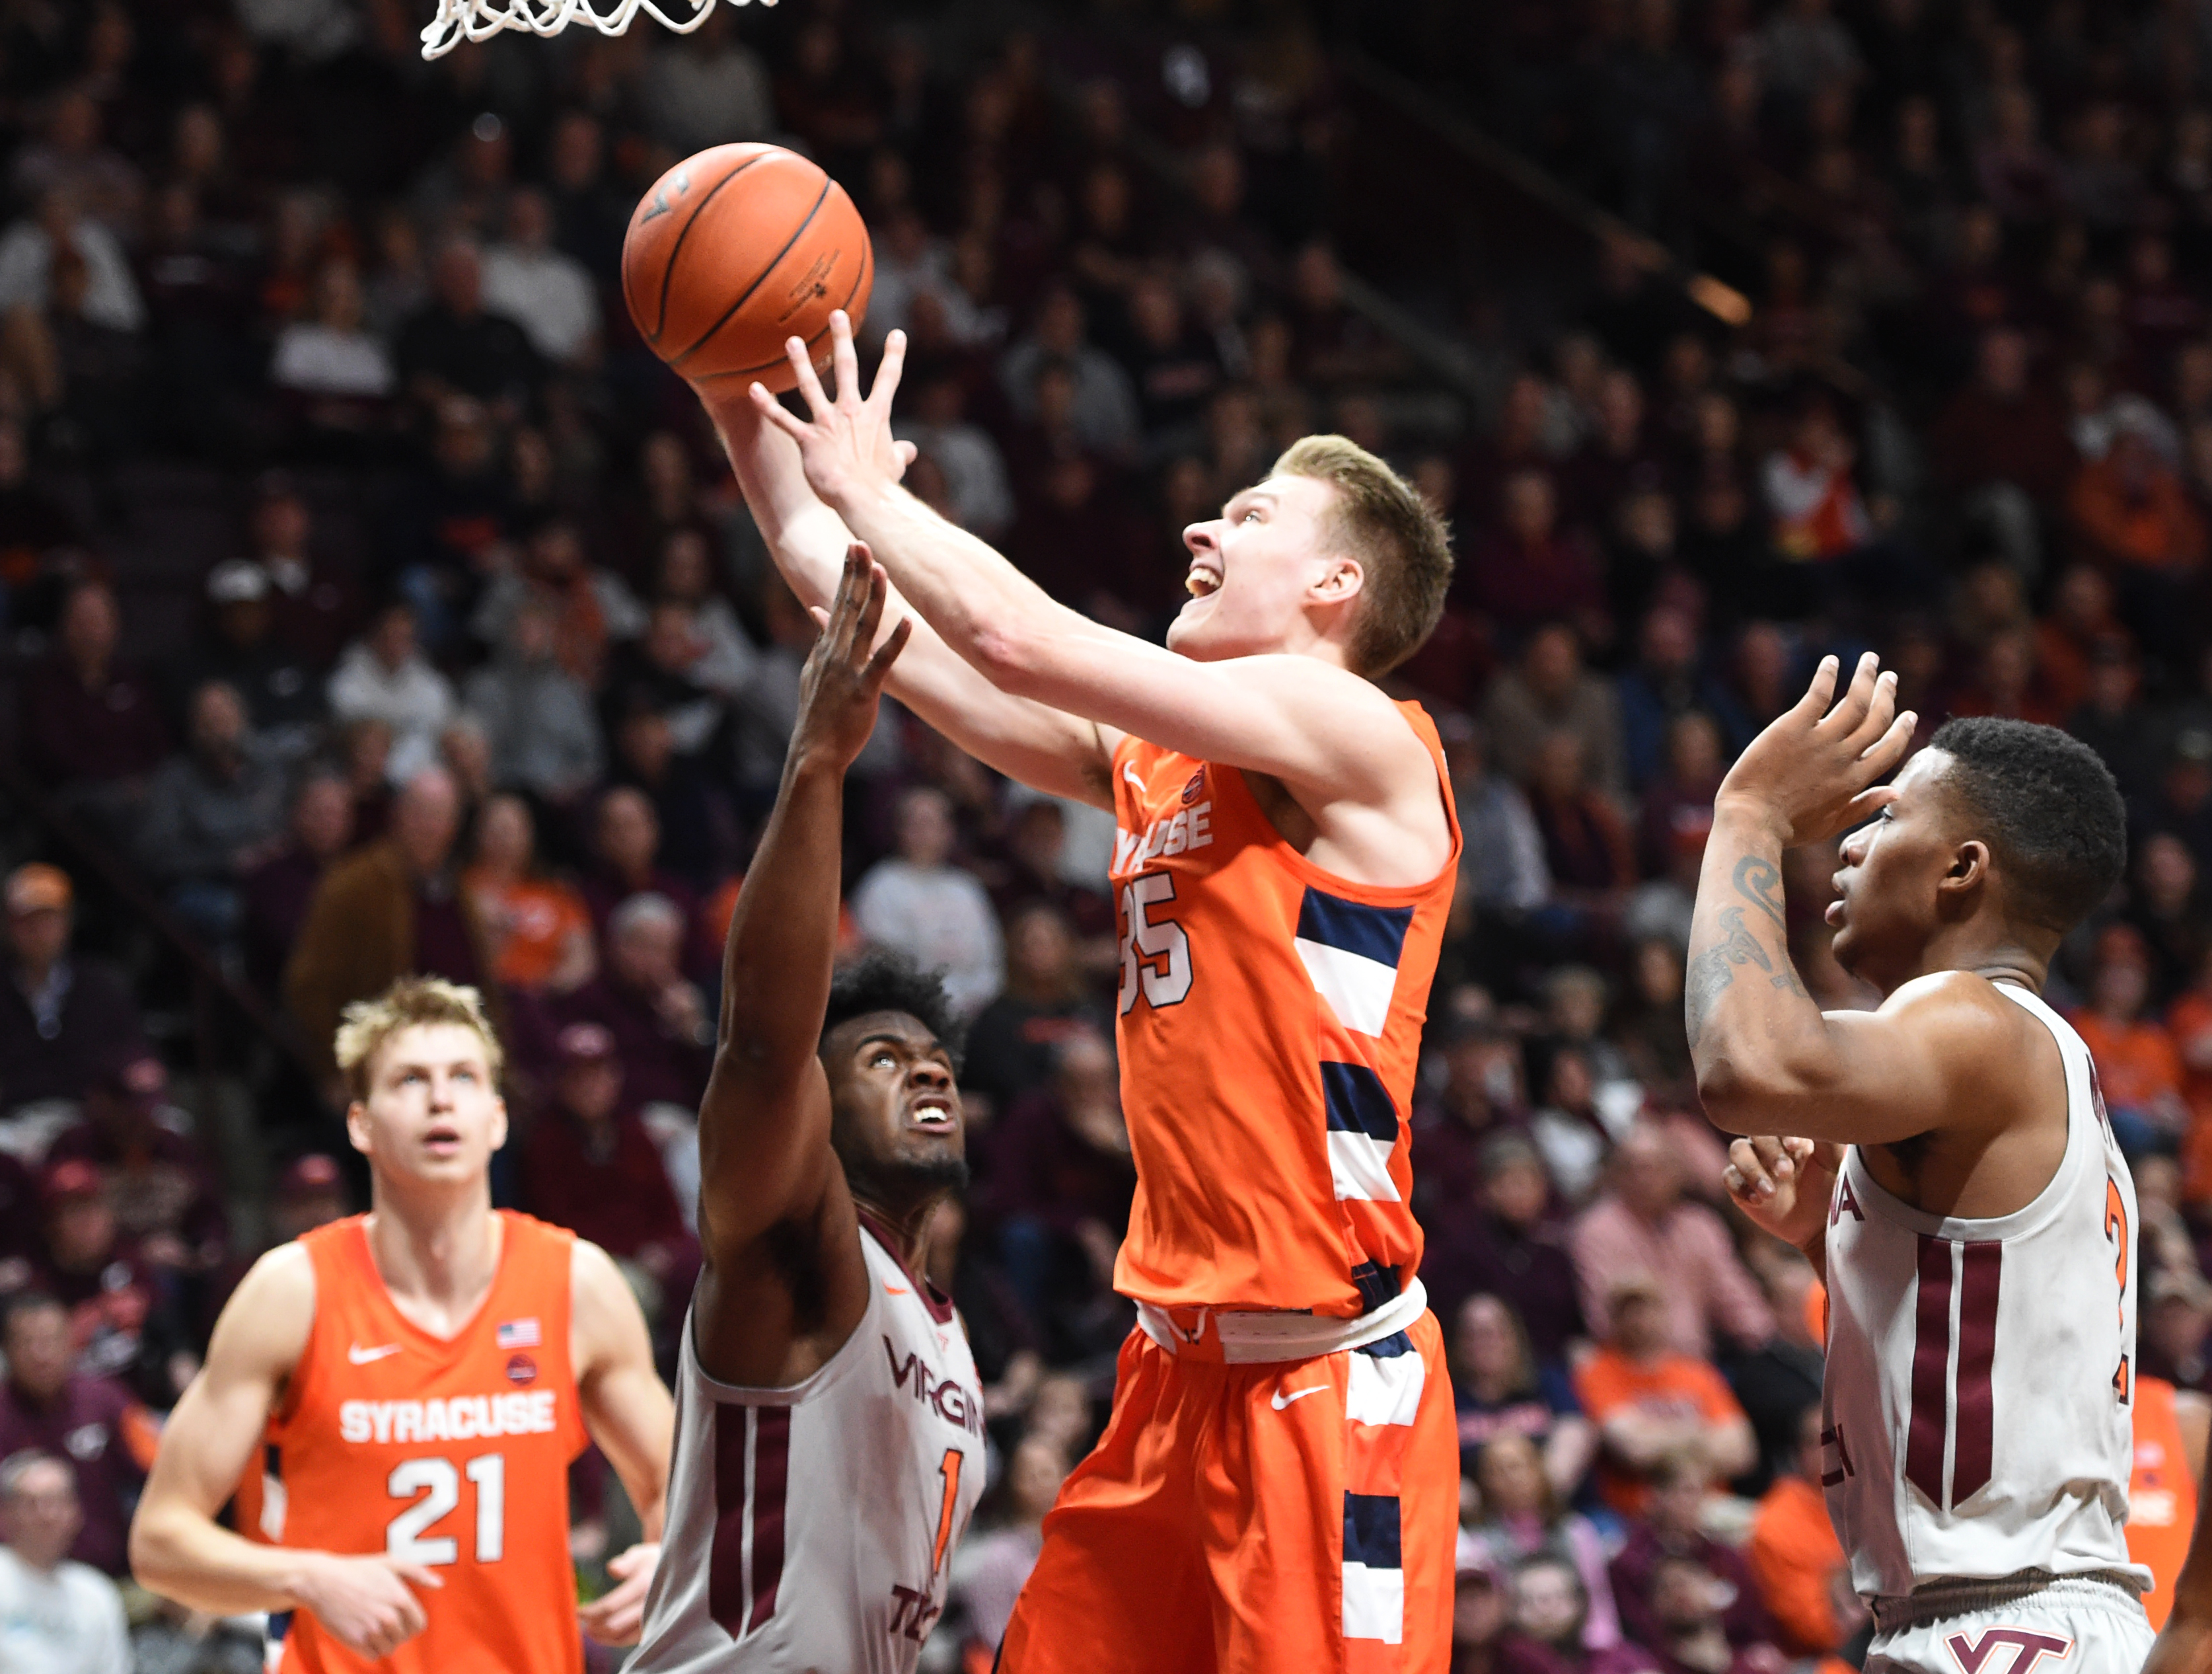 The 3-point happy Syracuse Orange went against type in win at Virginia Tech